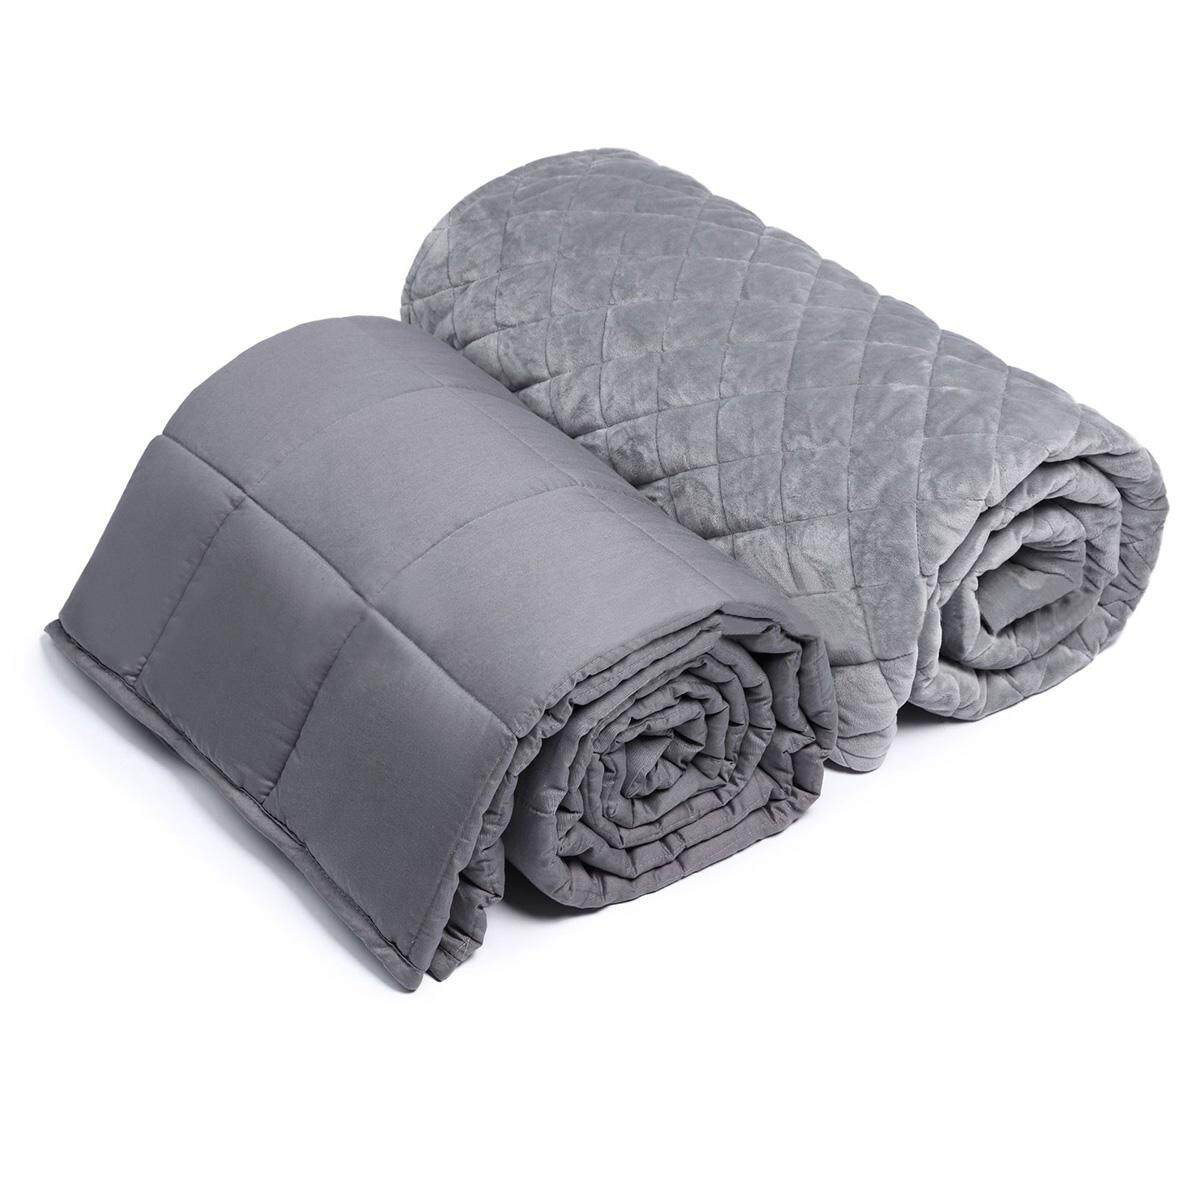 Weighted Blanket Heavy Sensory Gravity Kid Adult Sleep Anxiety With Cover 120*180(15lbs) By Audew.